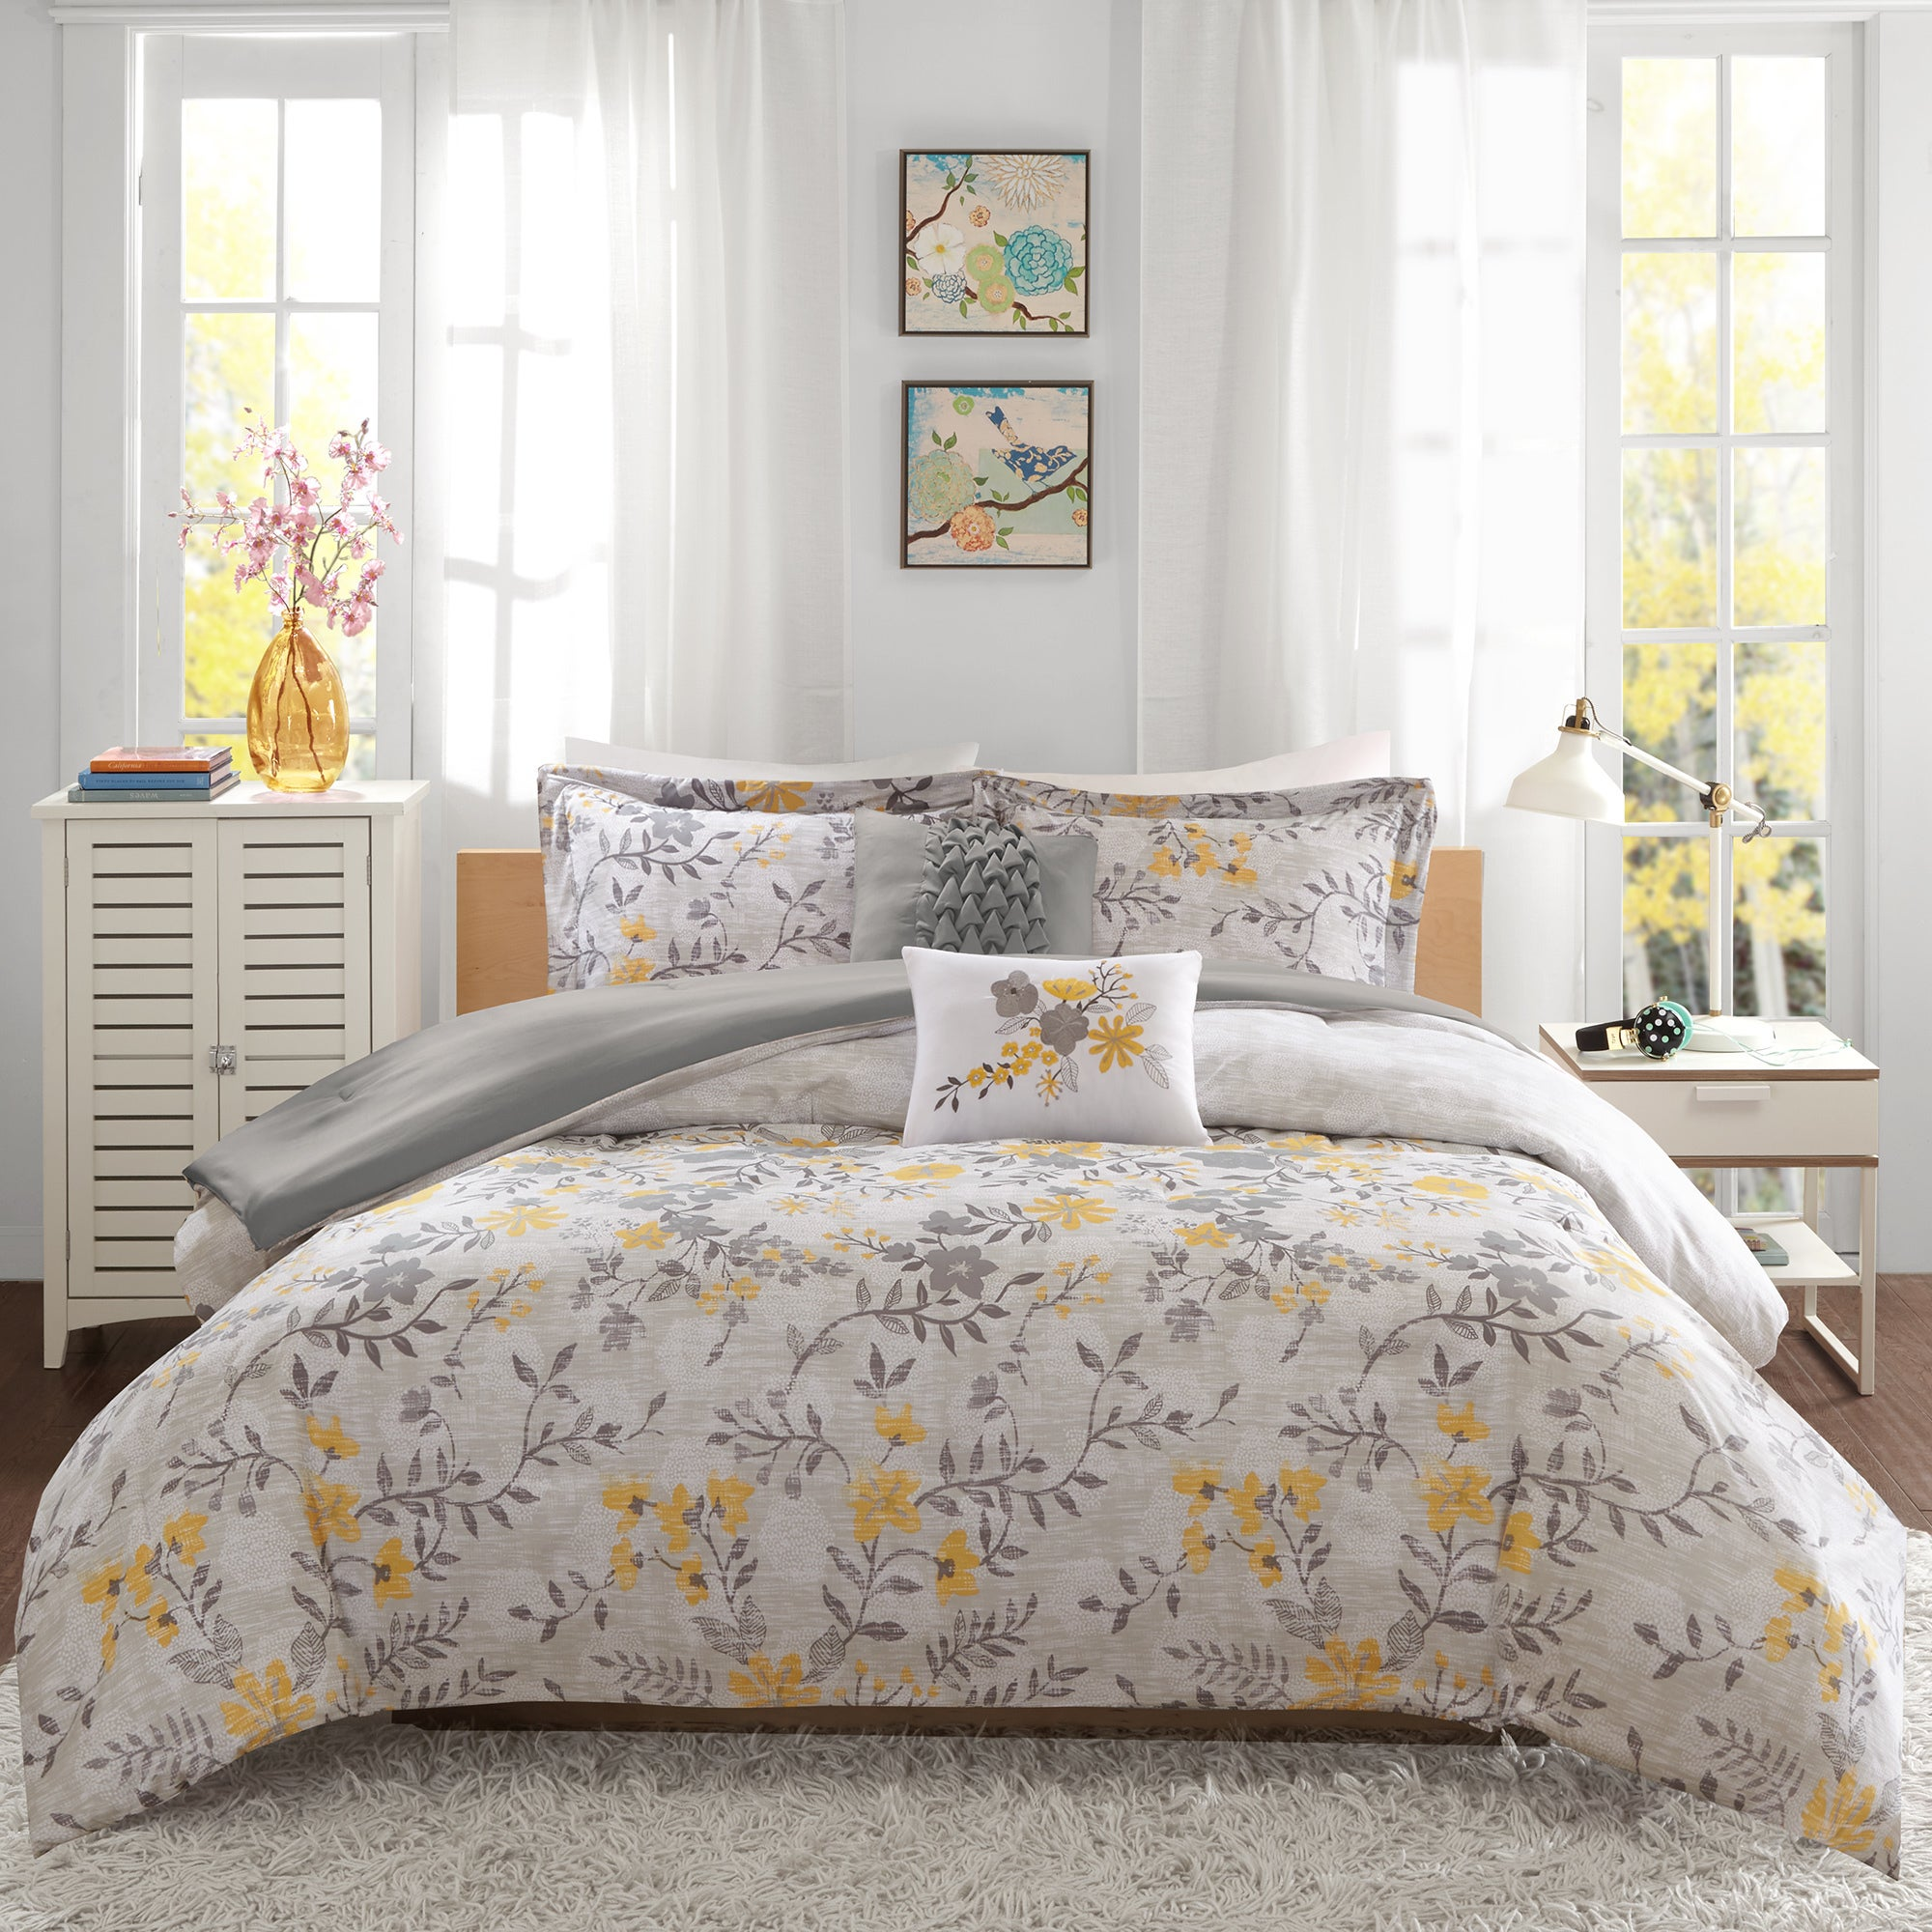 home overstock piece shipping gray bedding floral chic free embroidered comforter bag yellow bed a and nits grey bath product today in